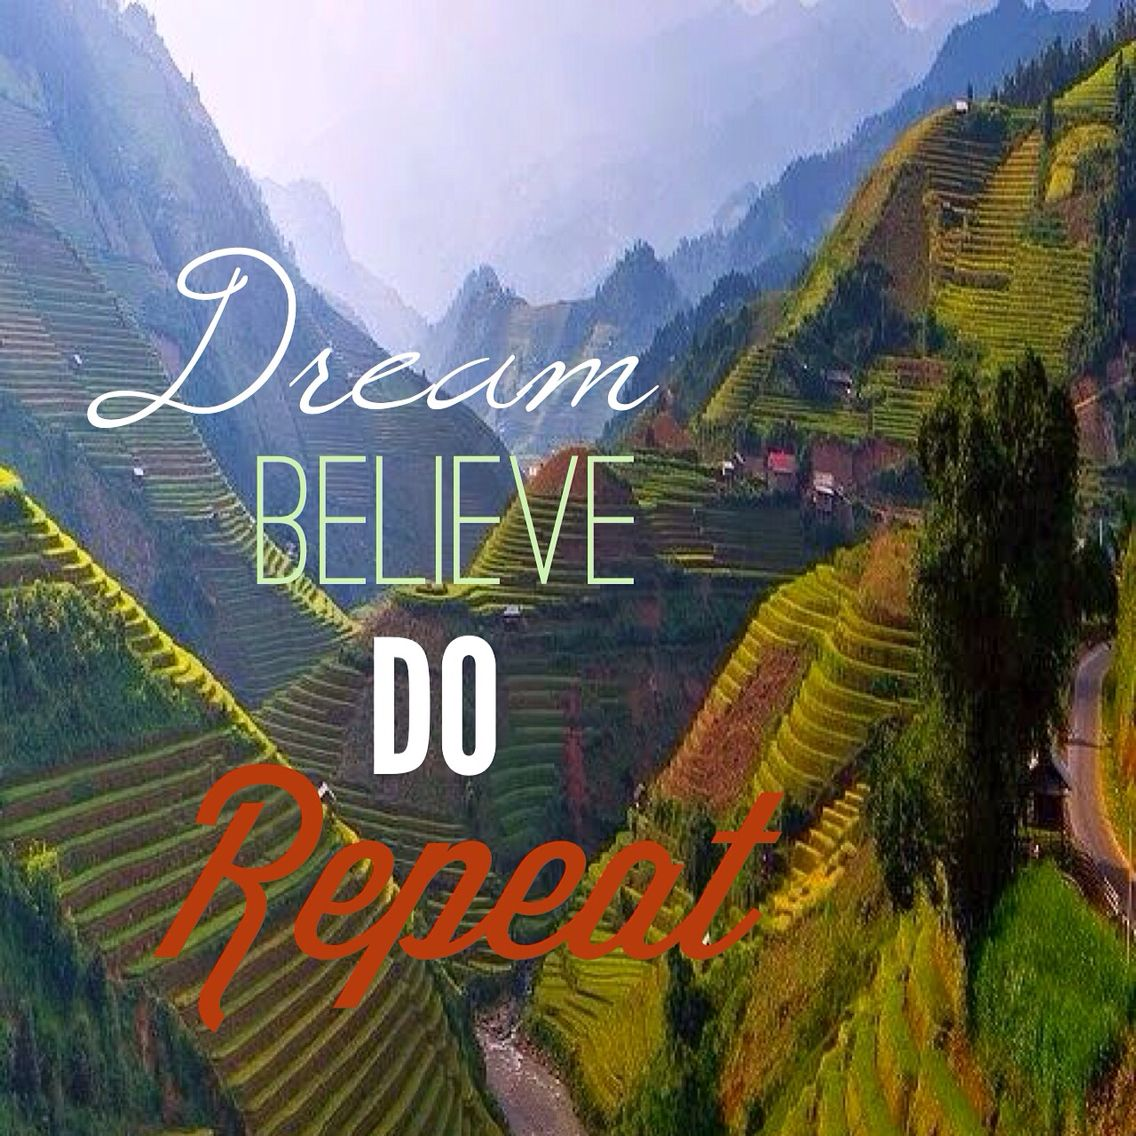 Today's Message Dream, Believe, Do, Repeat Messages